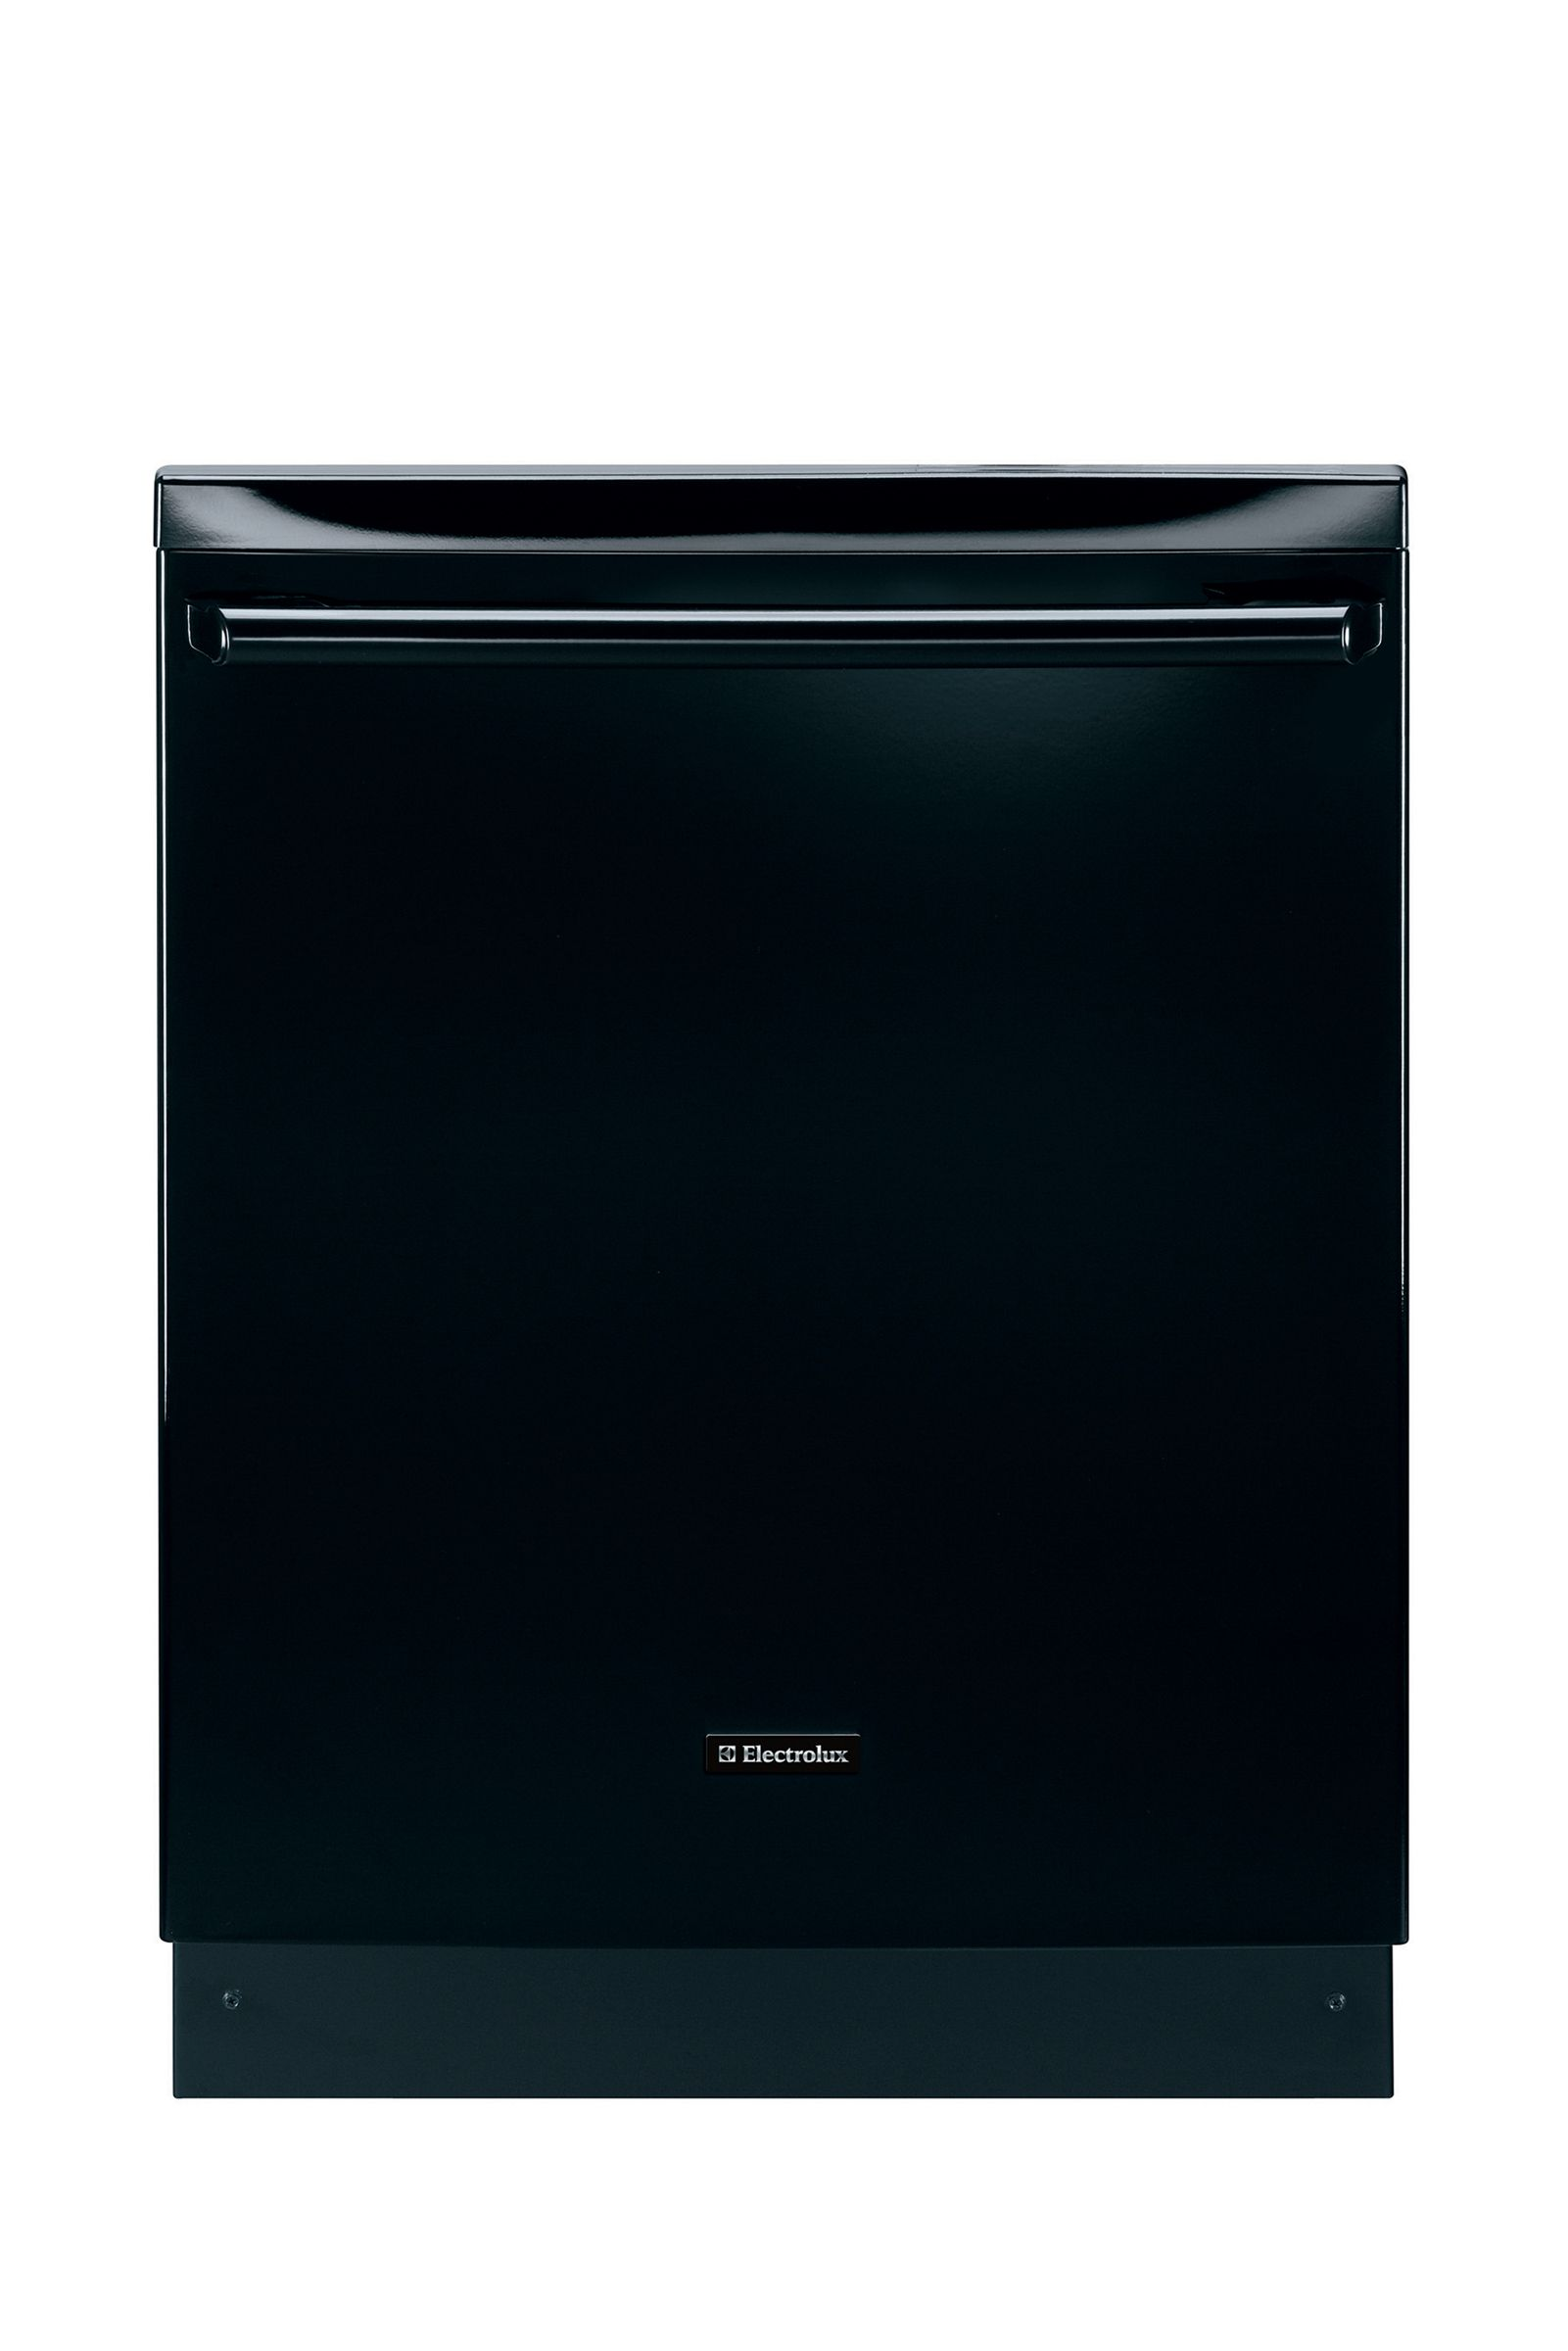 Electrolux 24 in. Built-In Dishwasher (EWDW6505G)